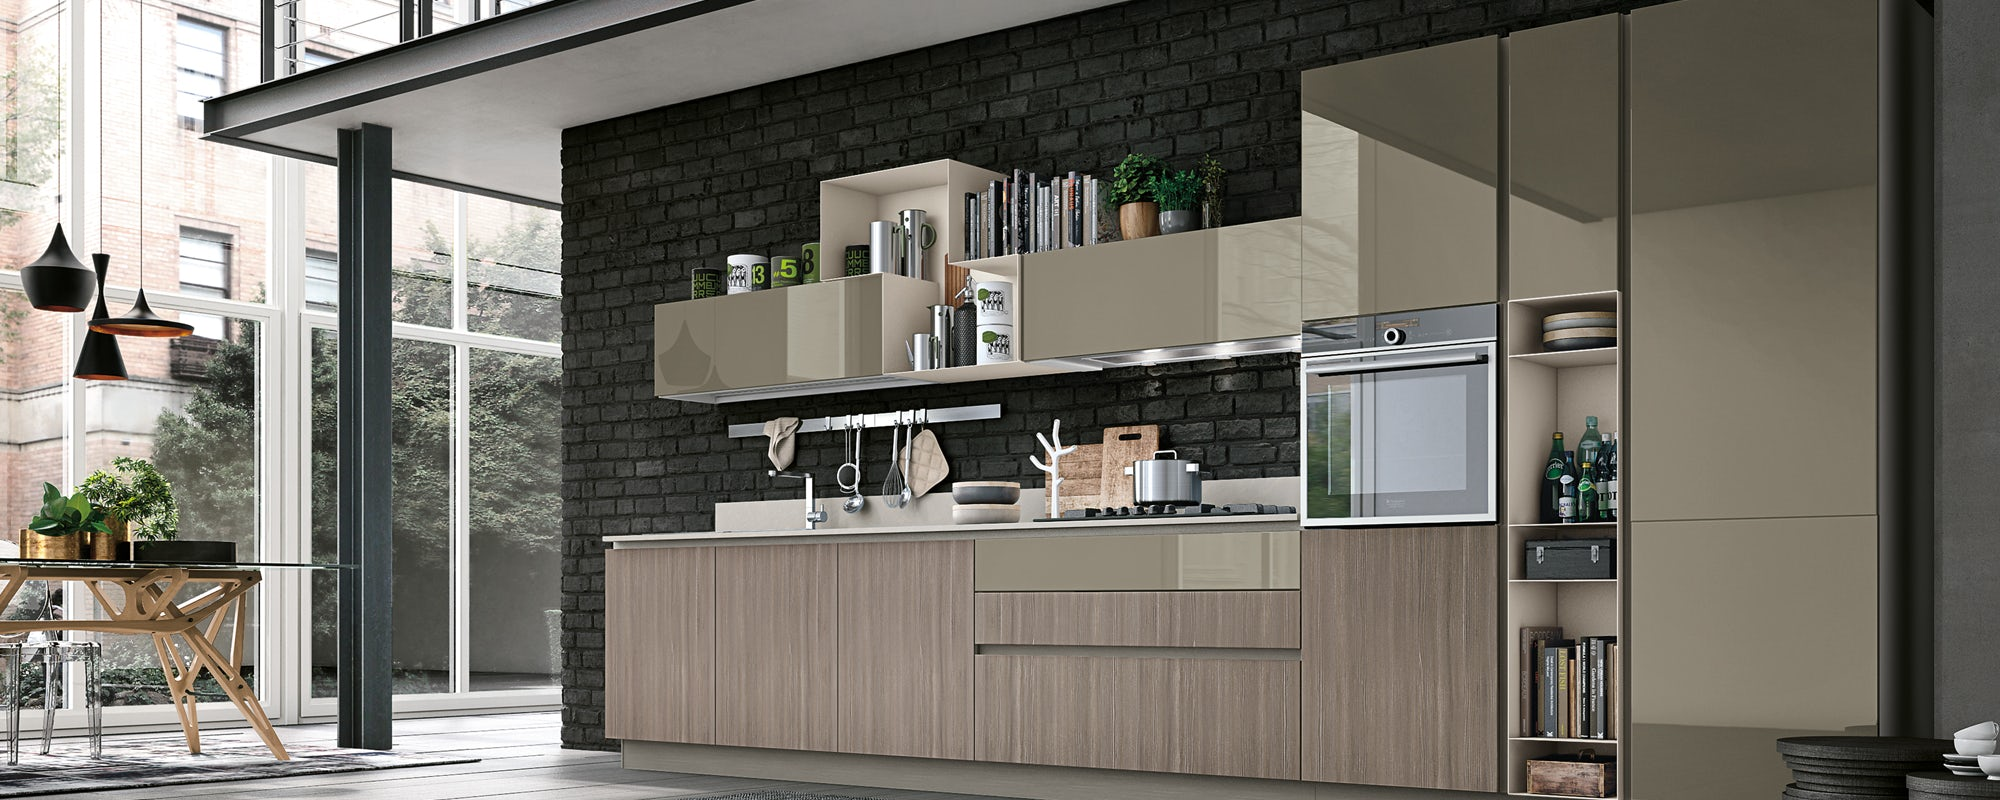 Cucina Stosa Infinity Lecce